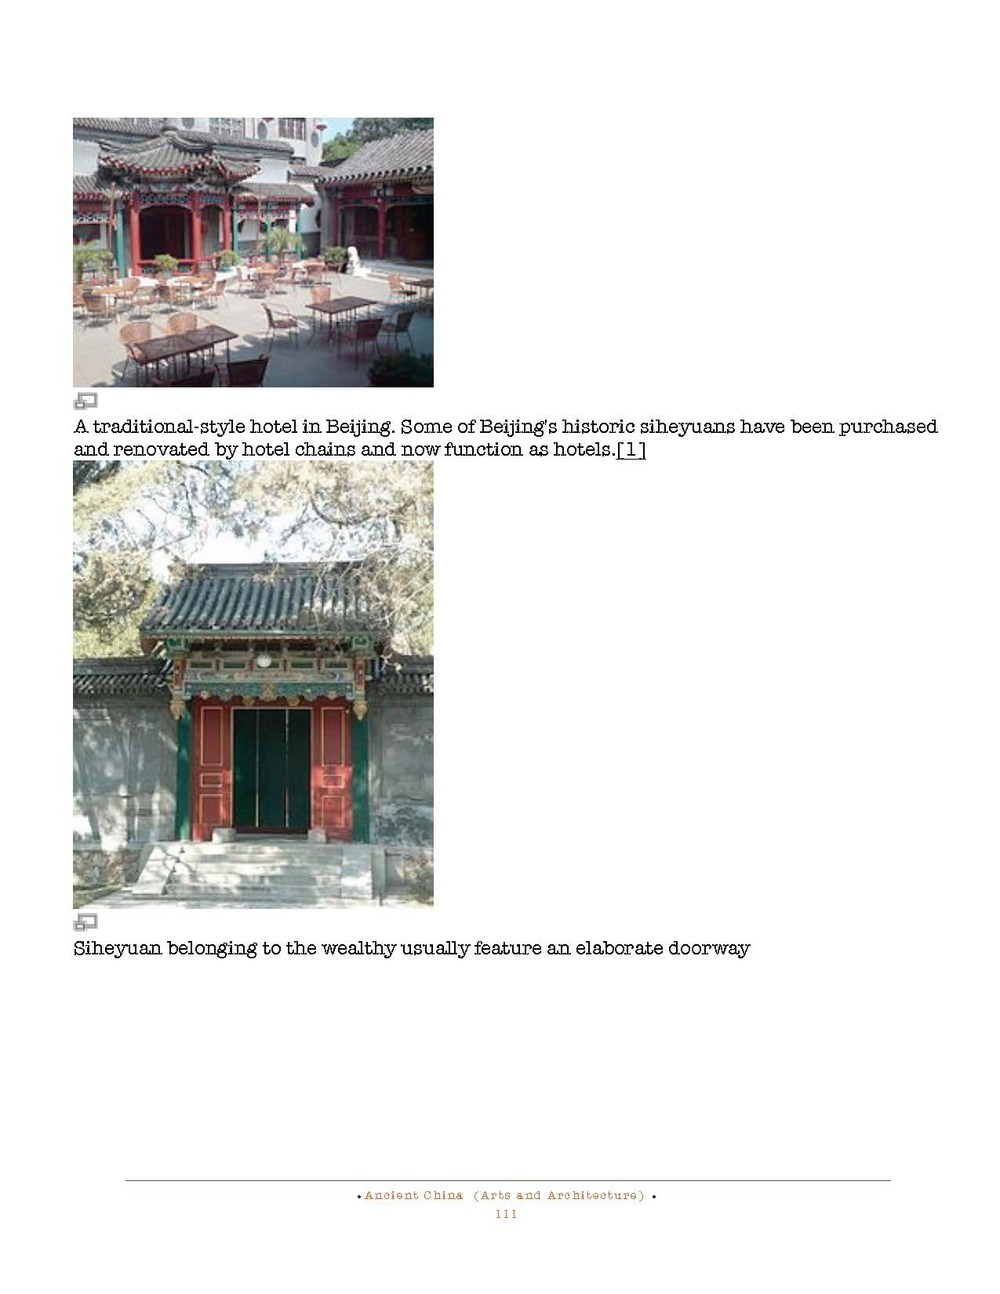 HOCE- Ancient China Notes_Page_111.jpg